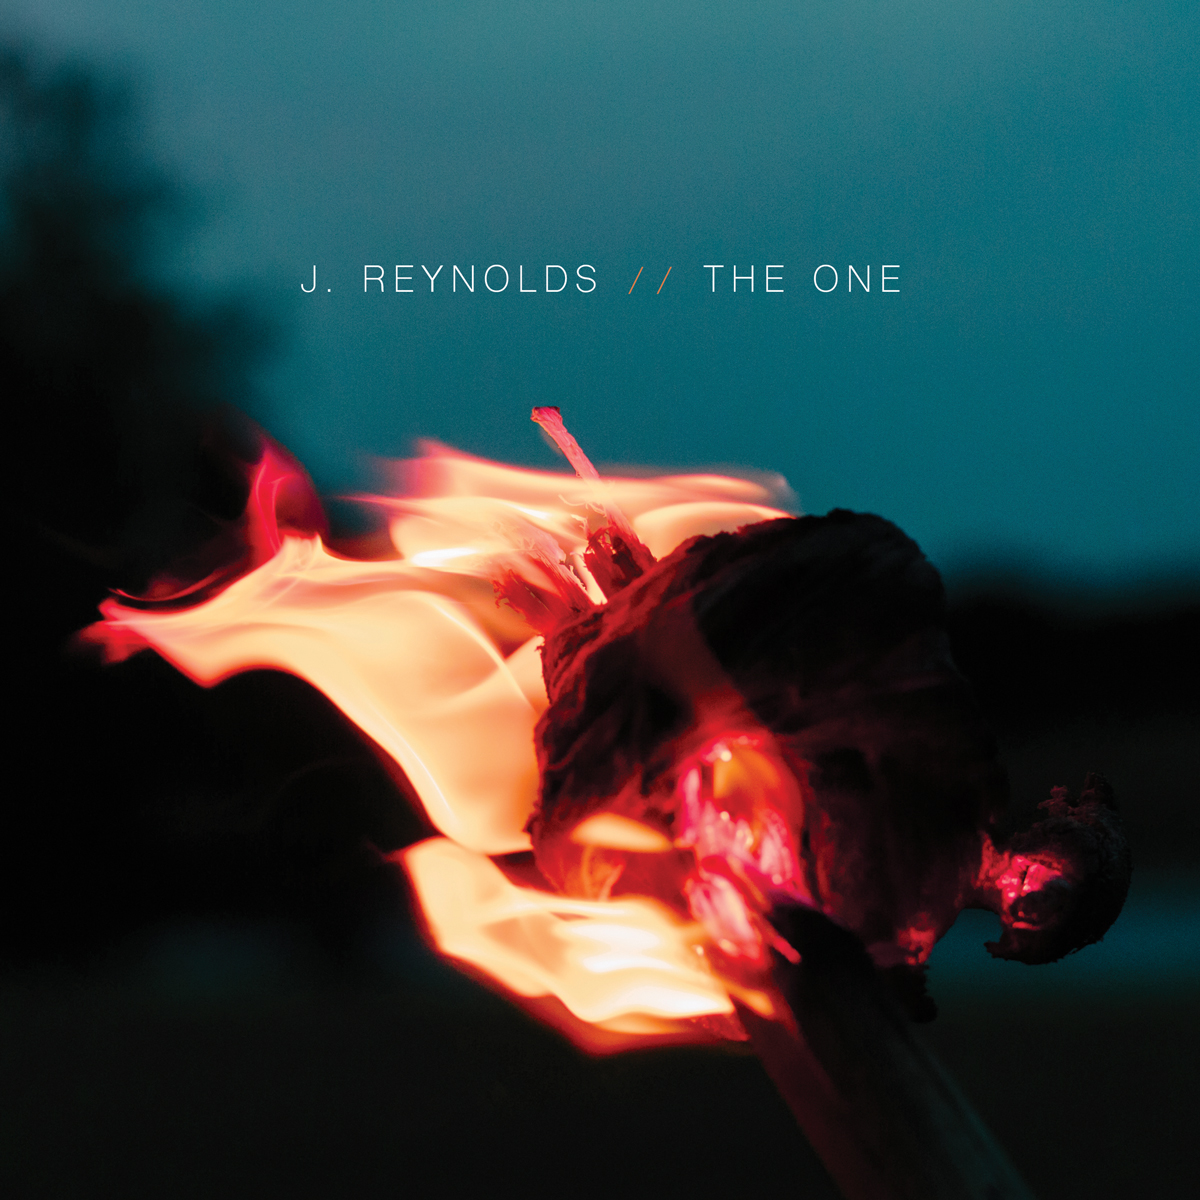 J. Reynolds / The One